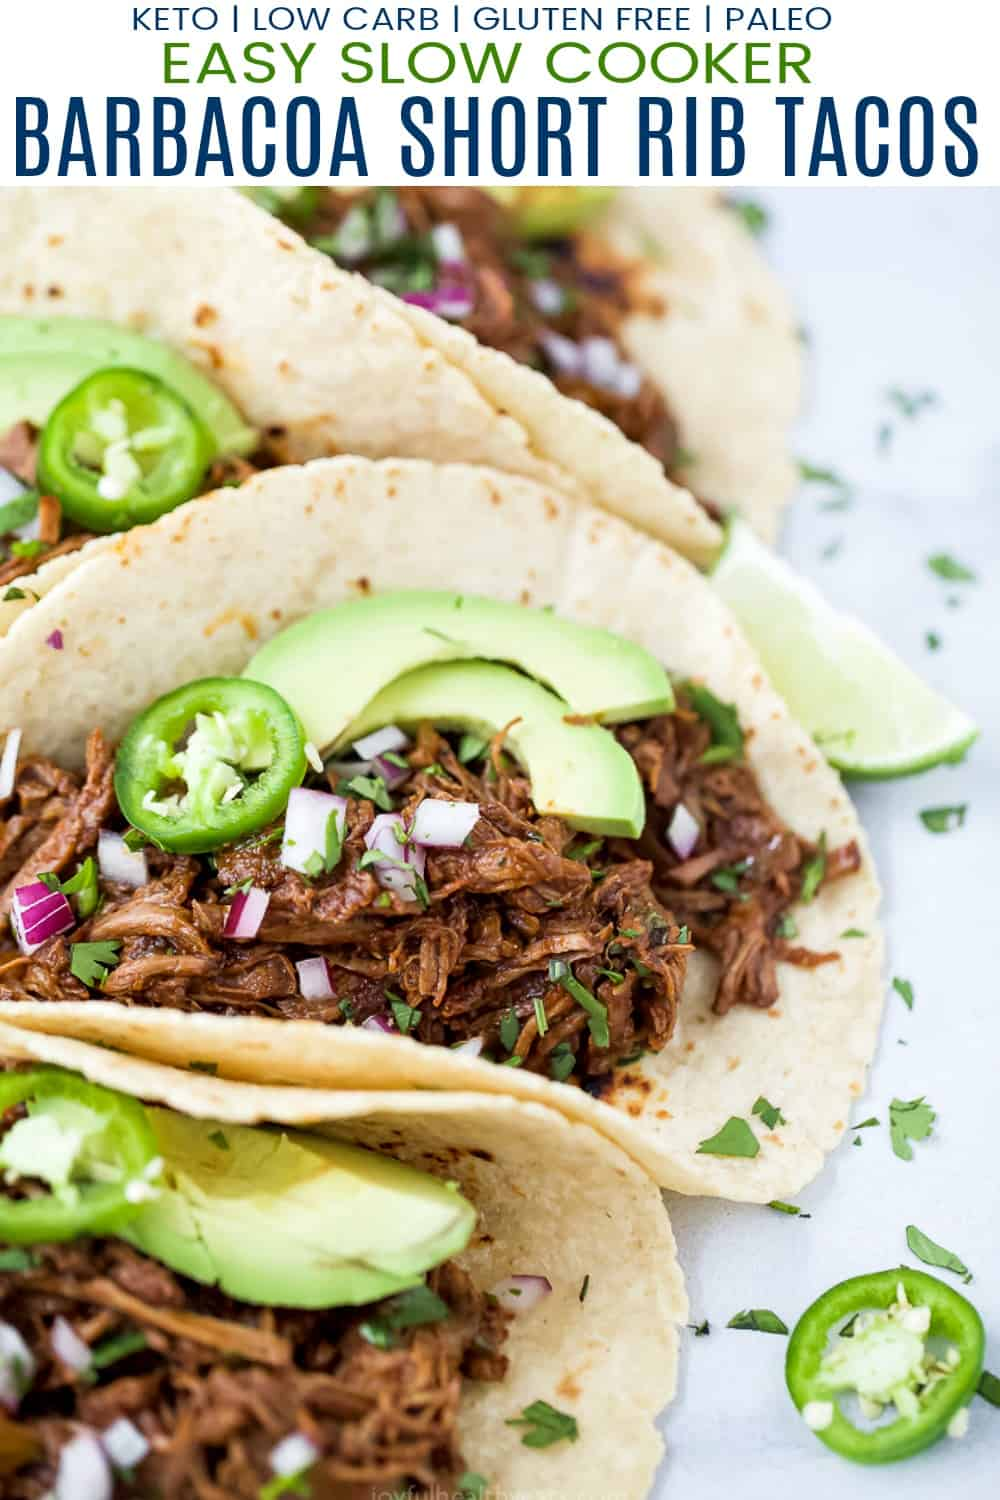 pinterest image for easy slow cooker barbacoa short rib tacos